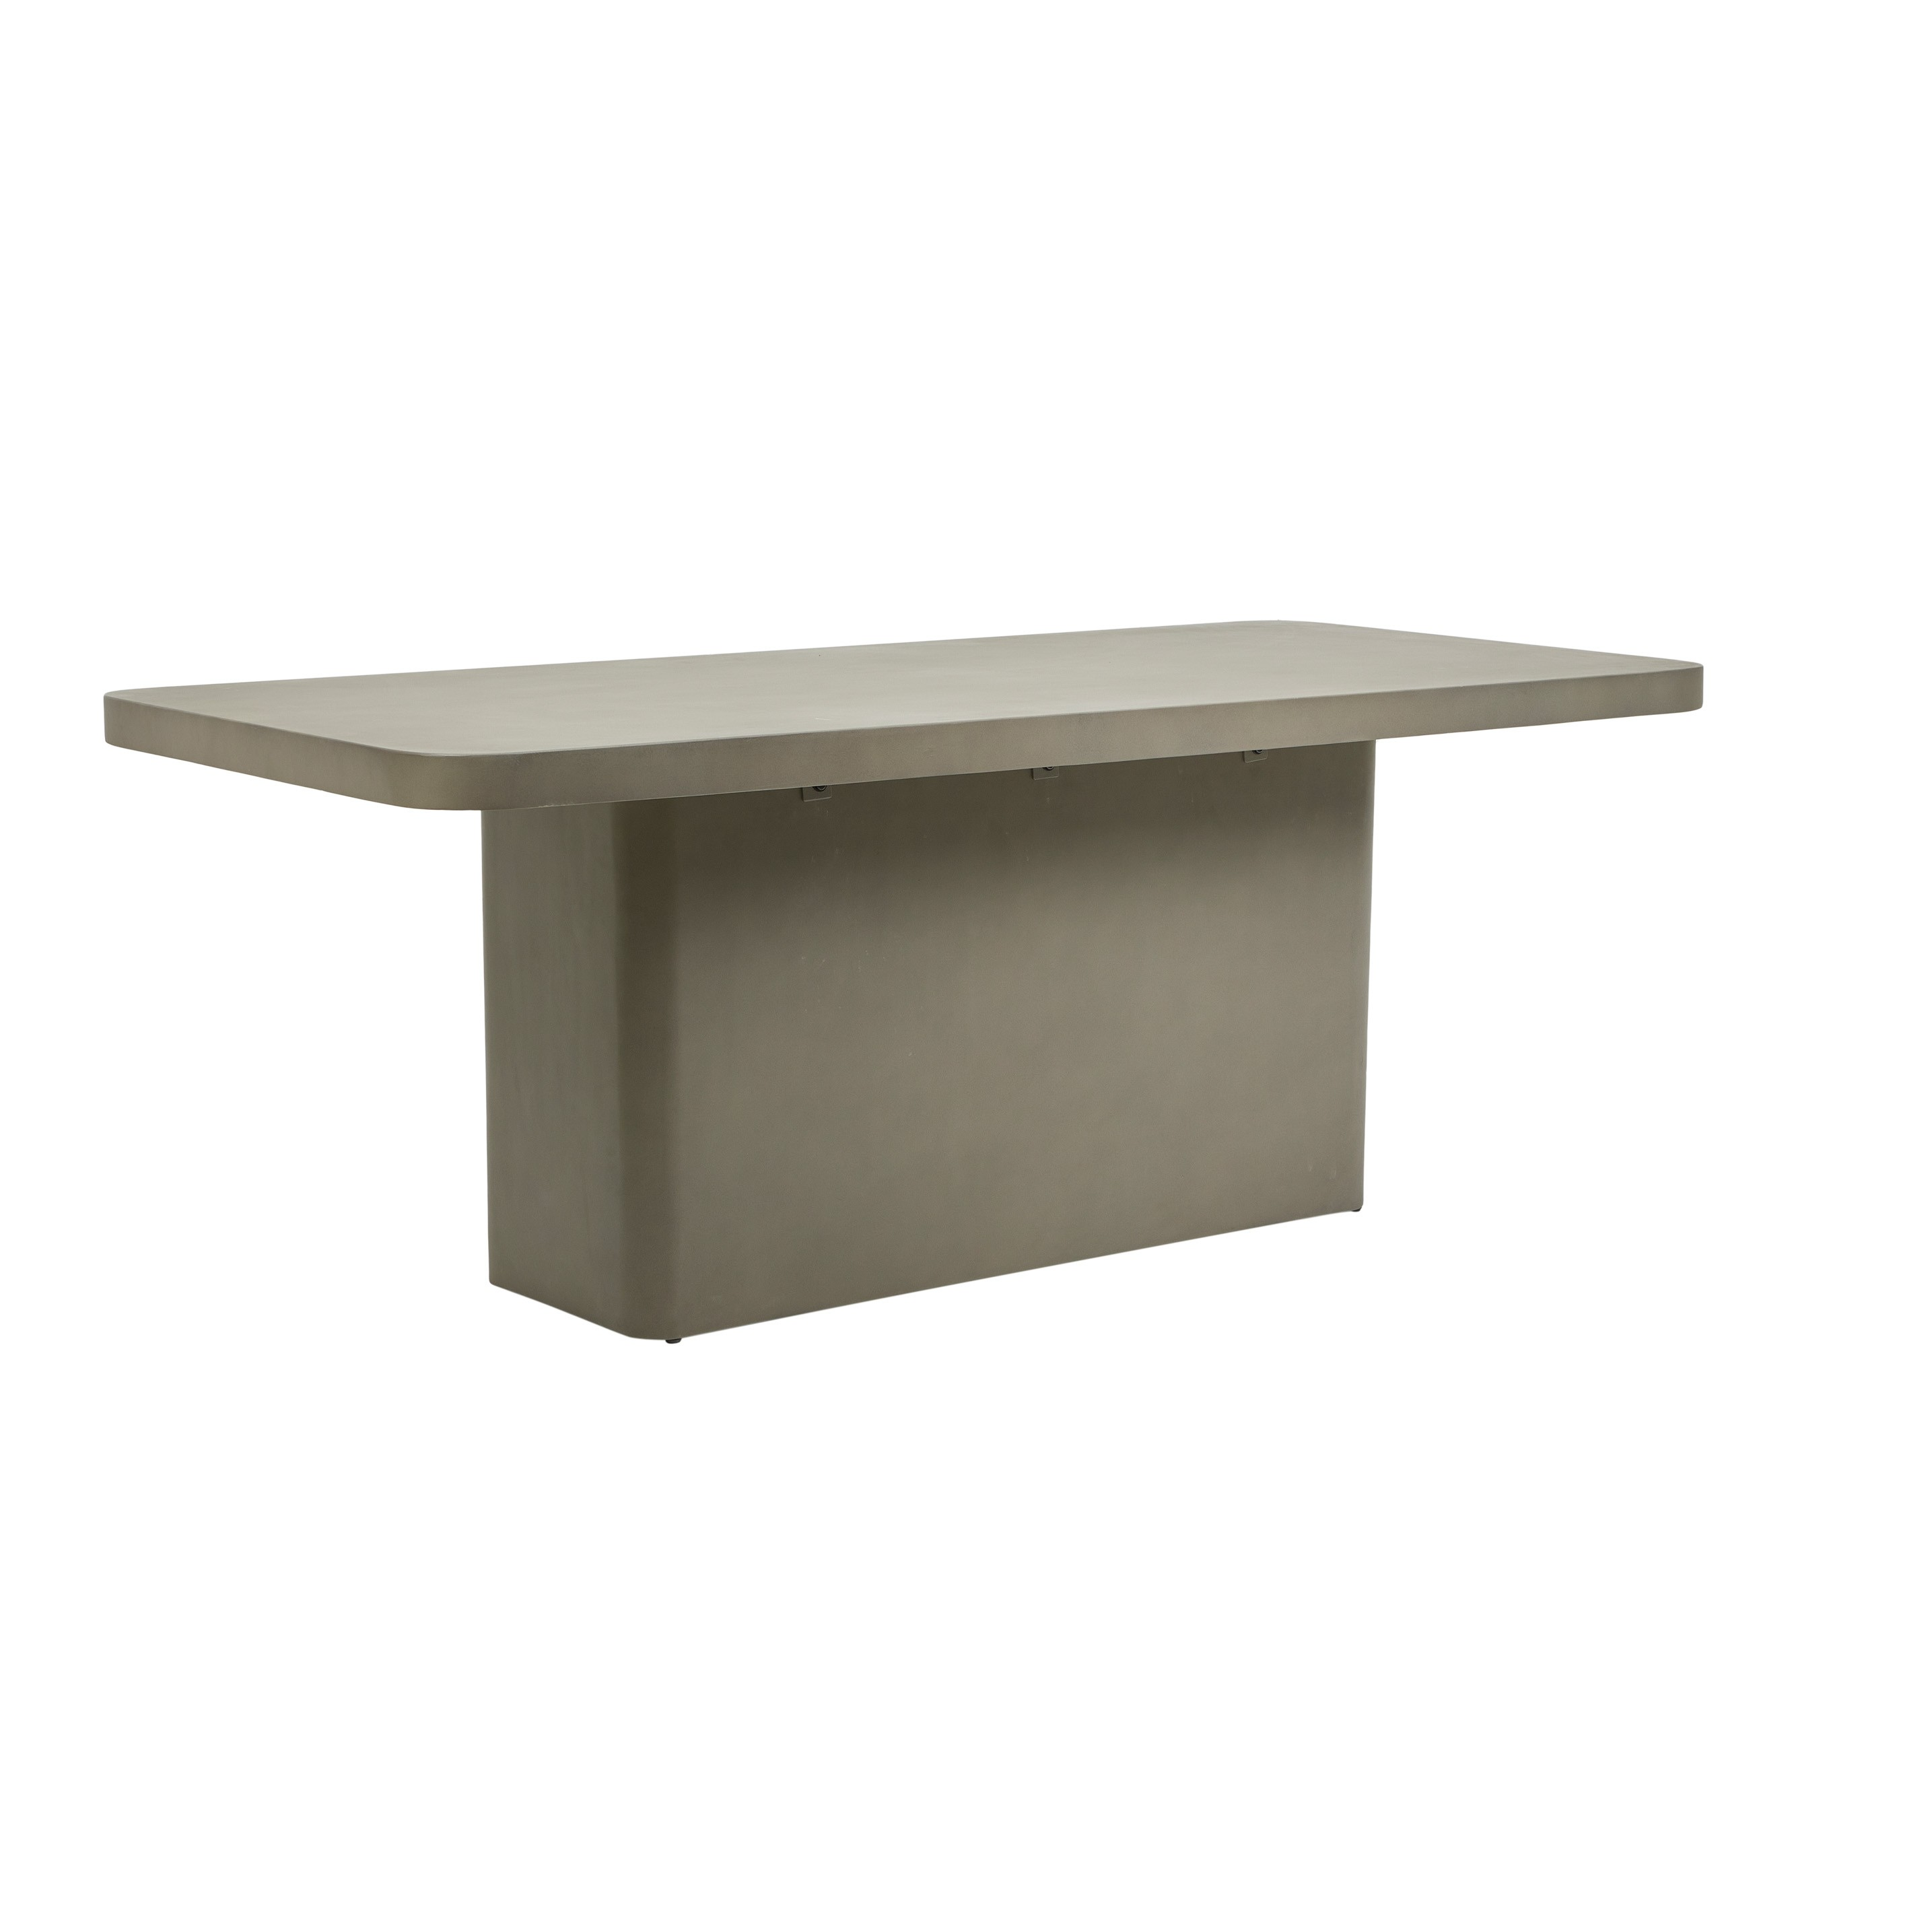 Furniture Hero-Images Dining-Tables ossa-concrete-cube-01